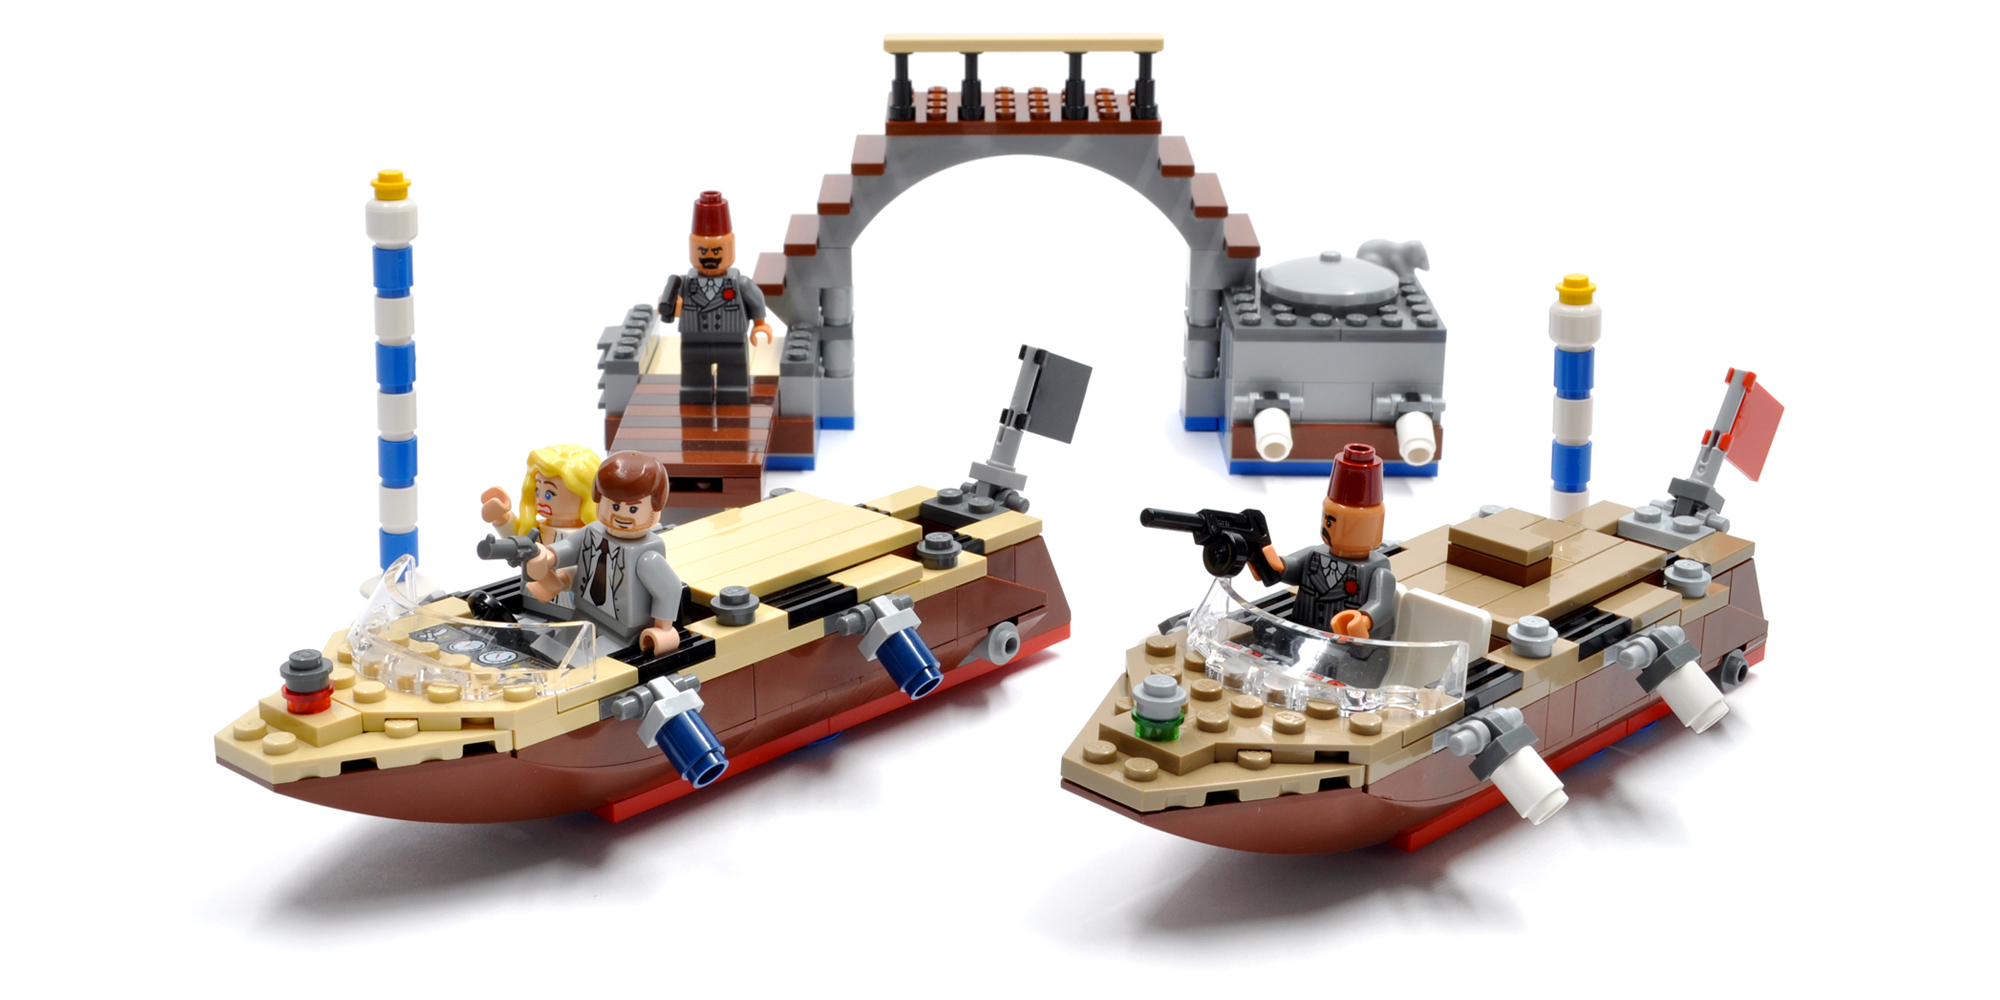 Venice Canal Chase (7197)